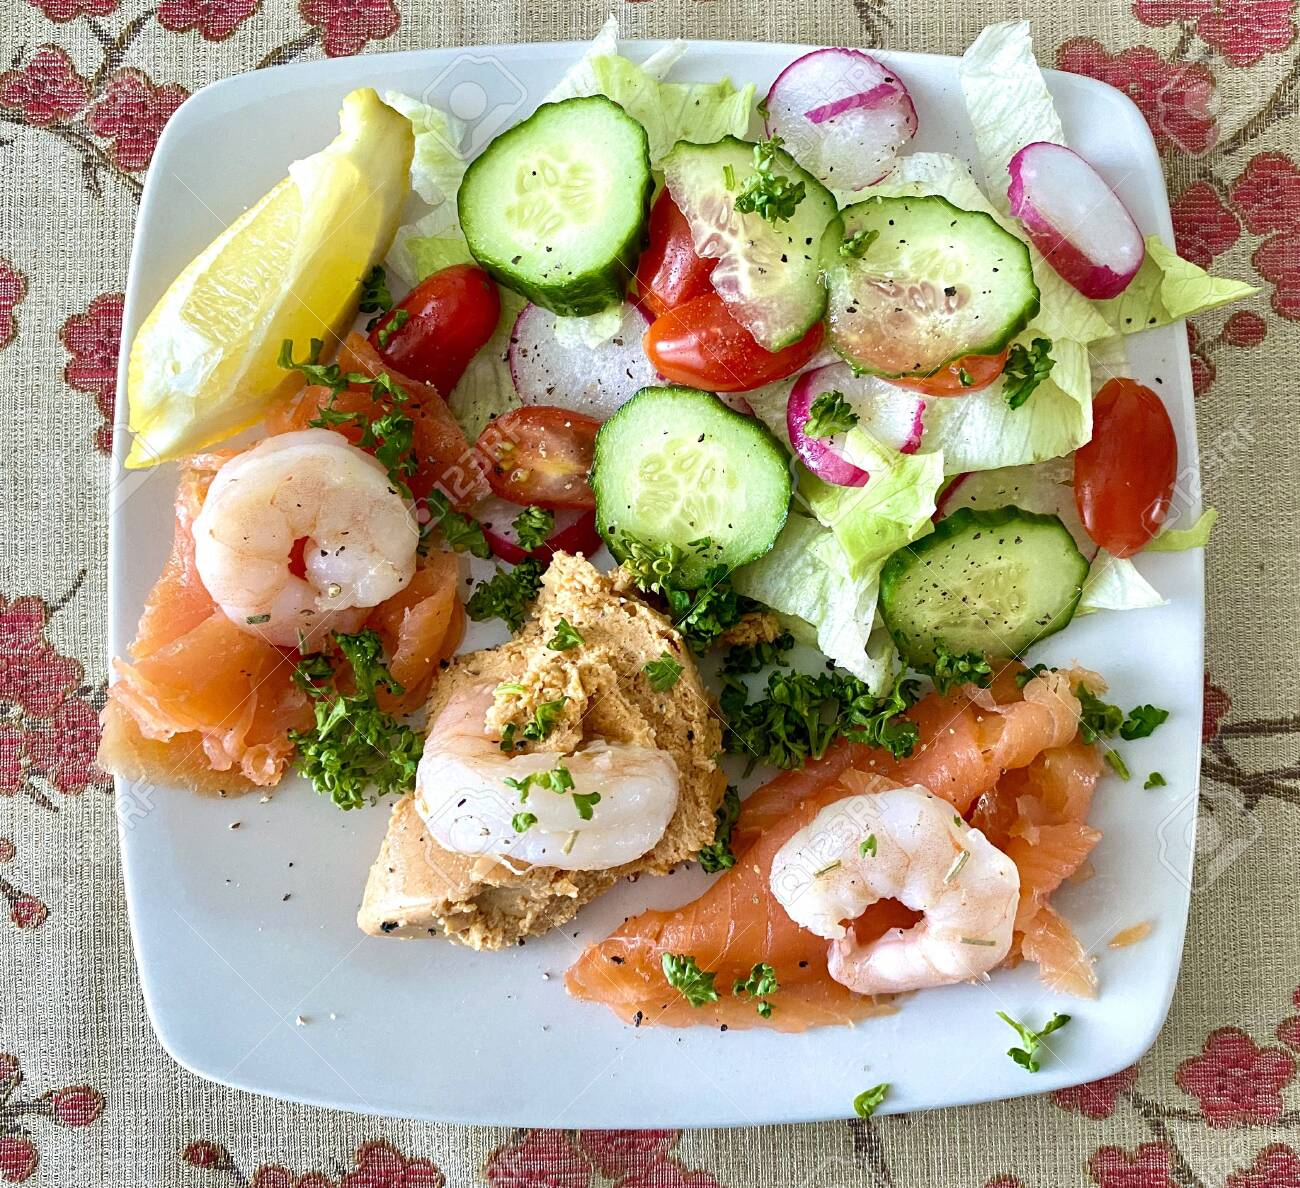 Delicious Seafood Salad Platter With Fresh Crab Smoked Salmon Stock Photo Picture And Royalty Free Image Image 151219623